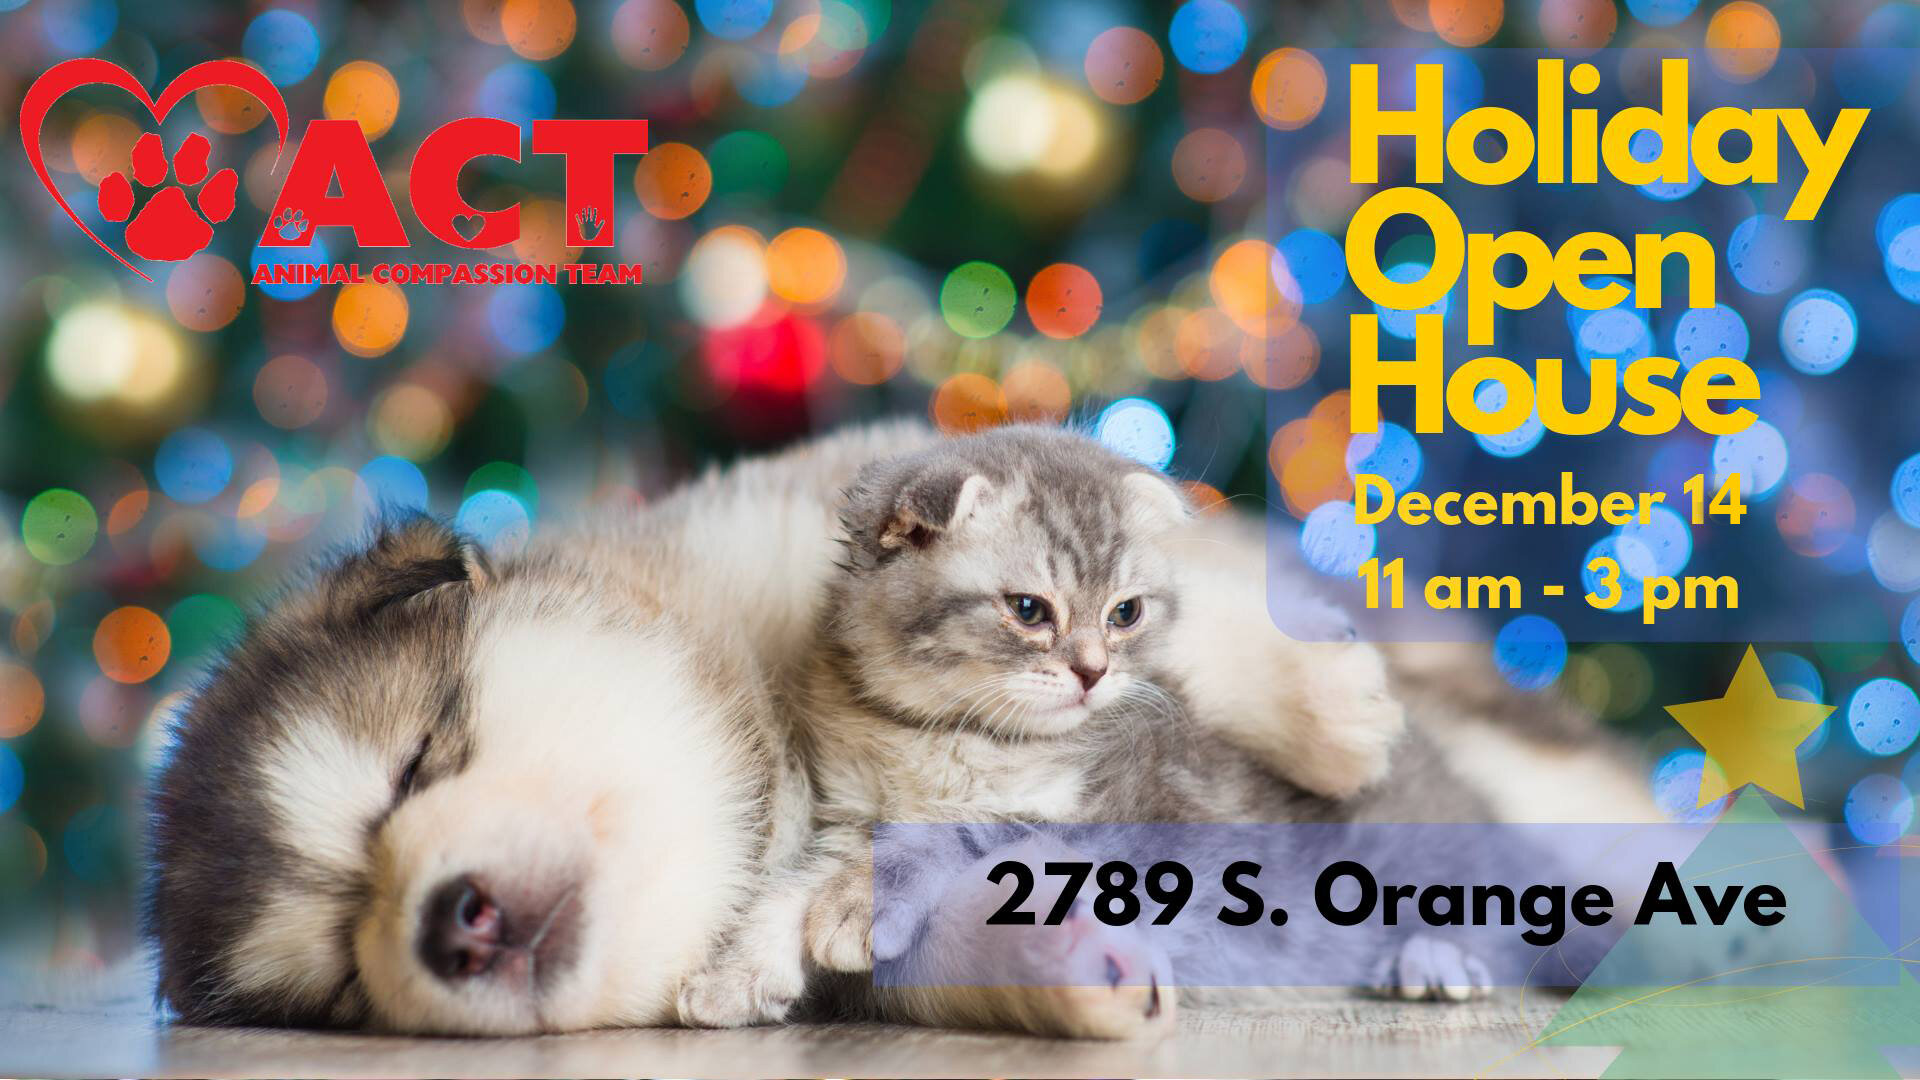 act holiday open house 2019.jpg